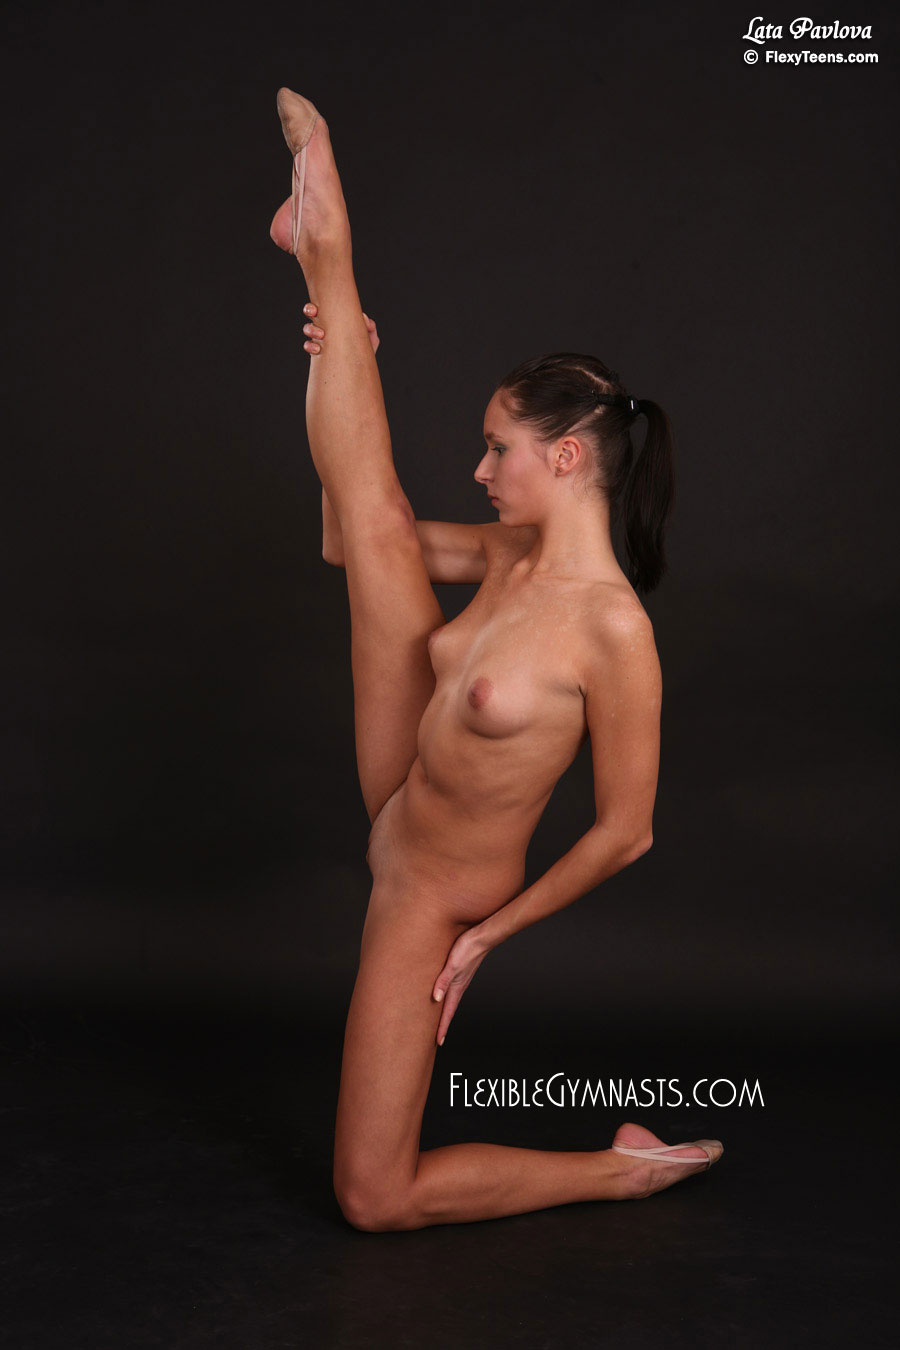 Flexible gymnast girl posing naked in the gym - XVIDEOSCOM